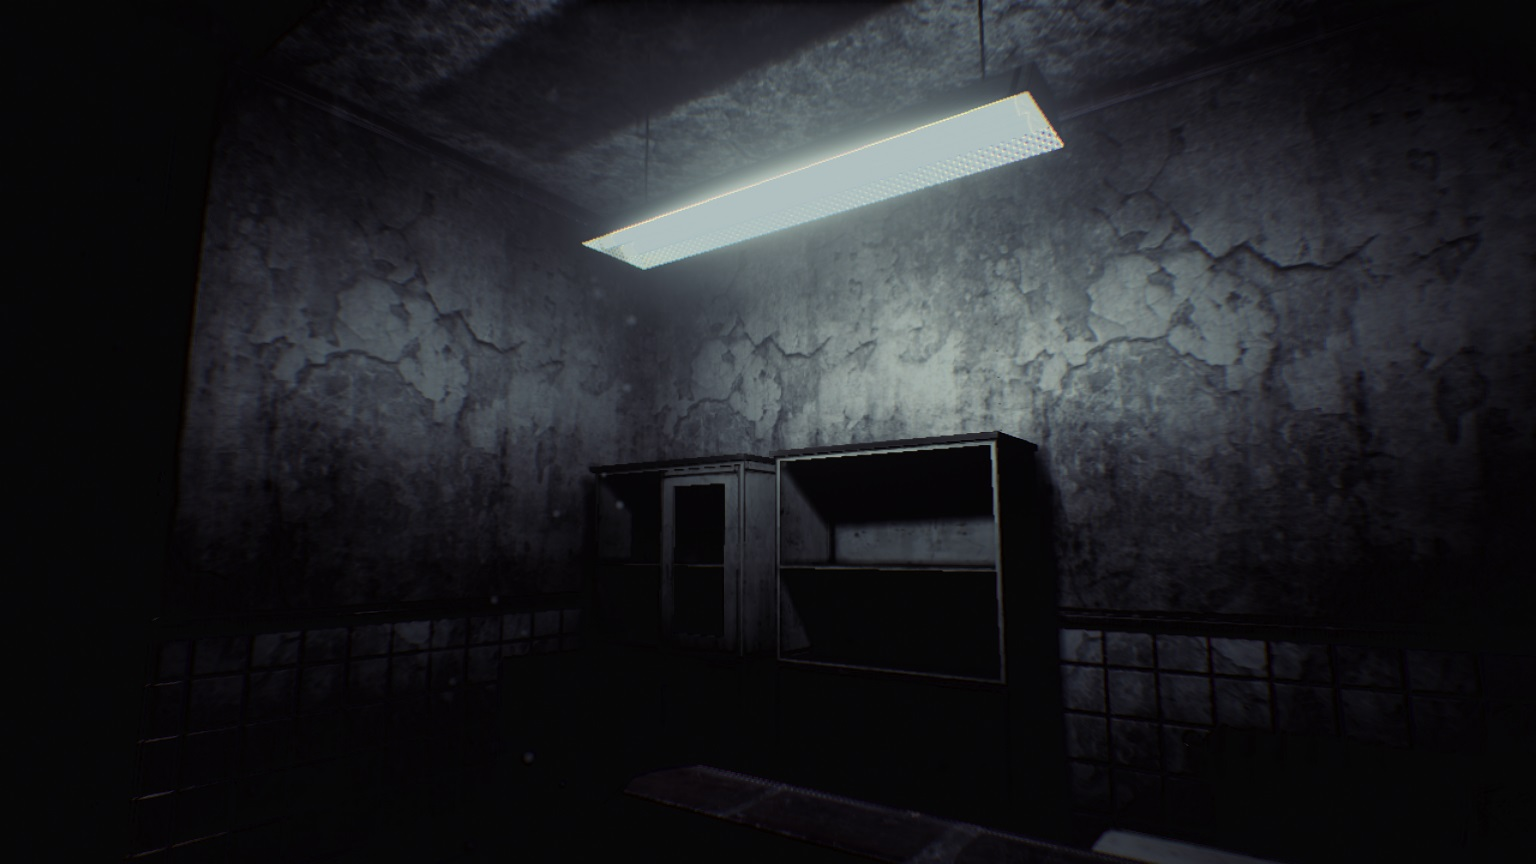 Image 1 13th floor simulator mod db for 13th floor games